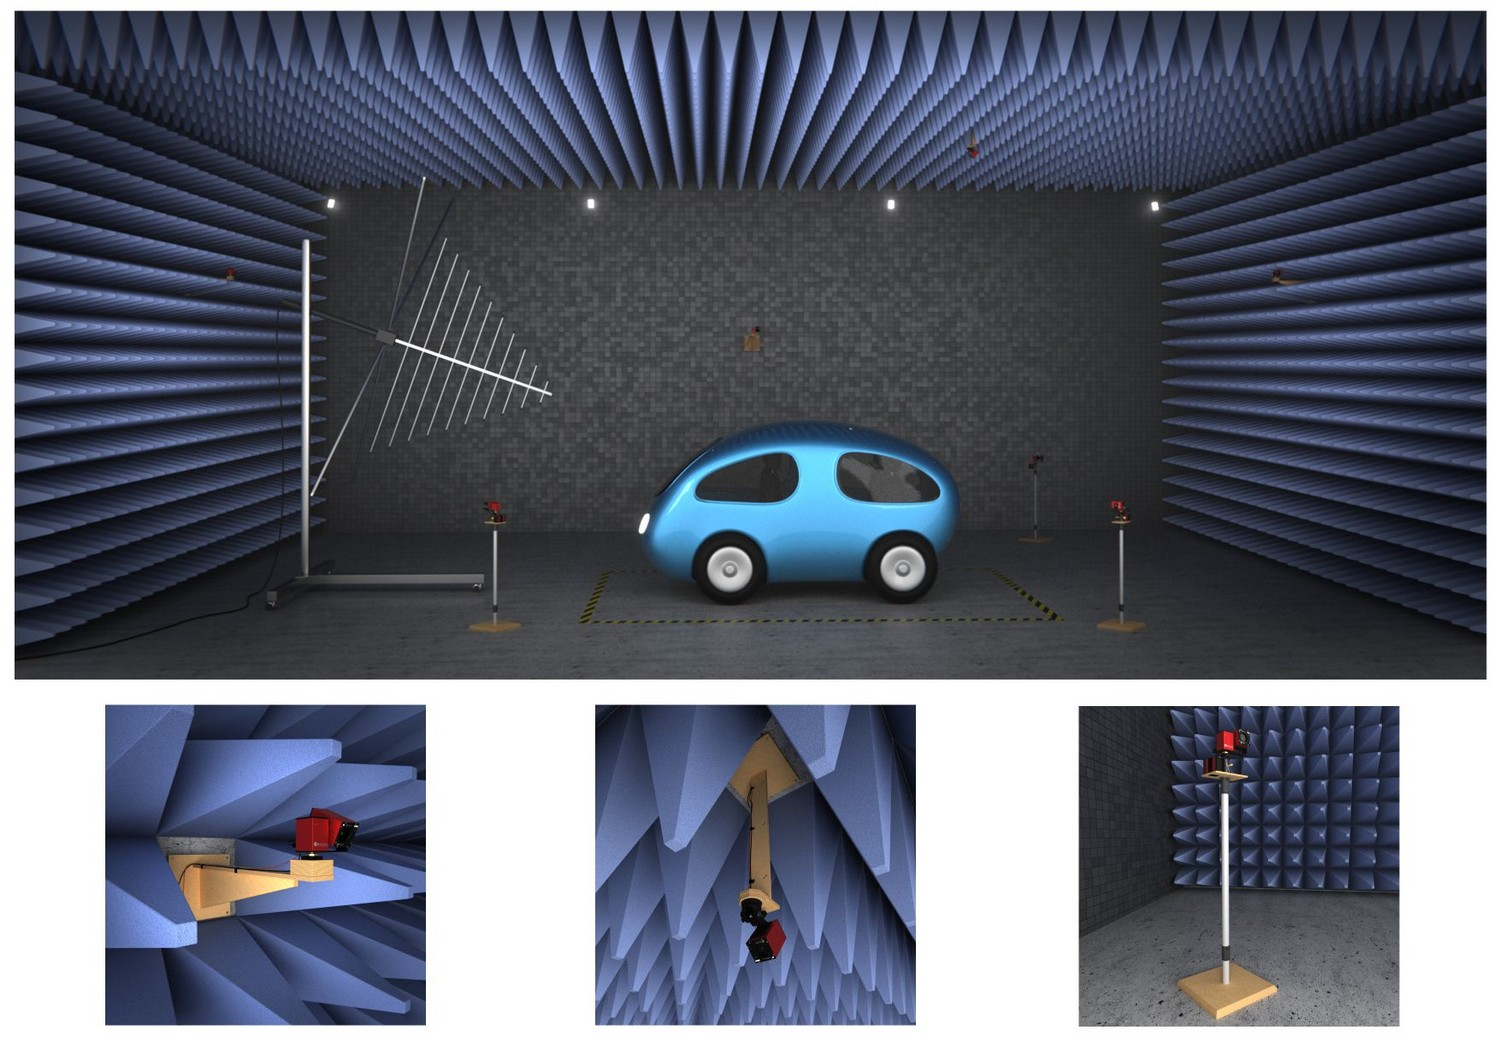 anechoic chamber with wallmount, ceiling mount, and monopod